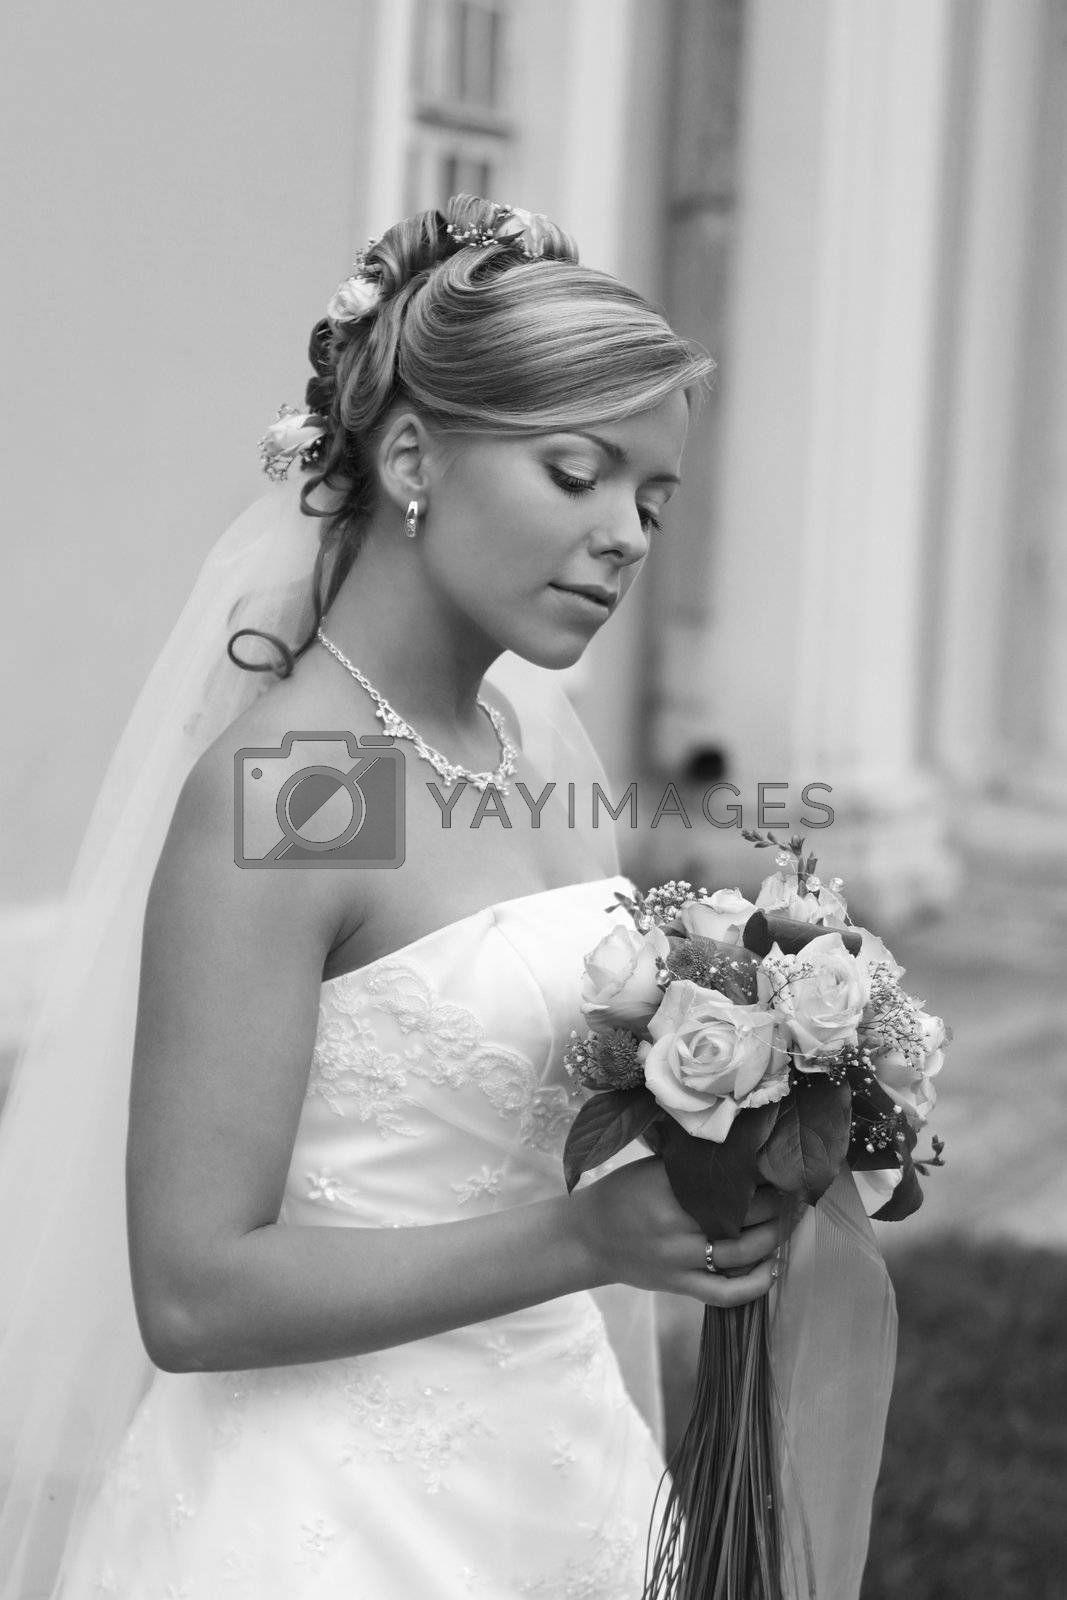 The beautiful bride with a bouquet from roses. b/w